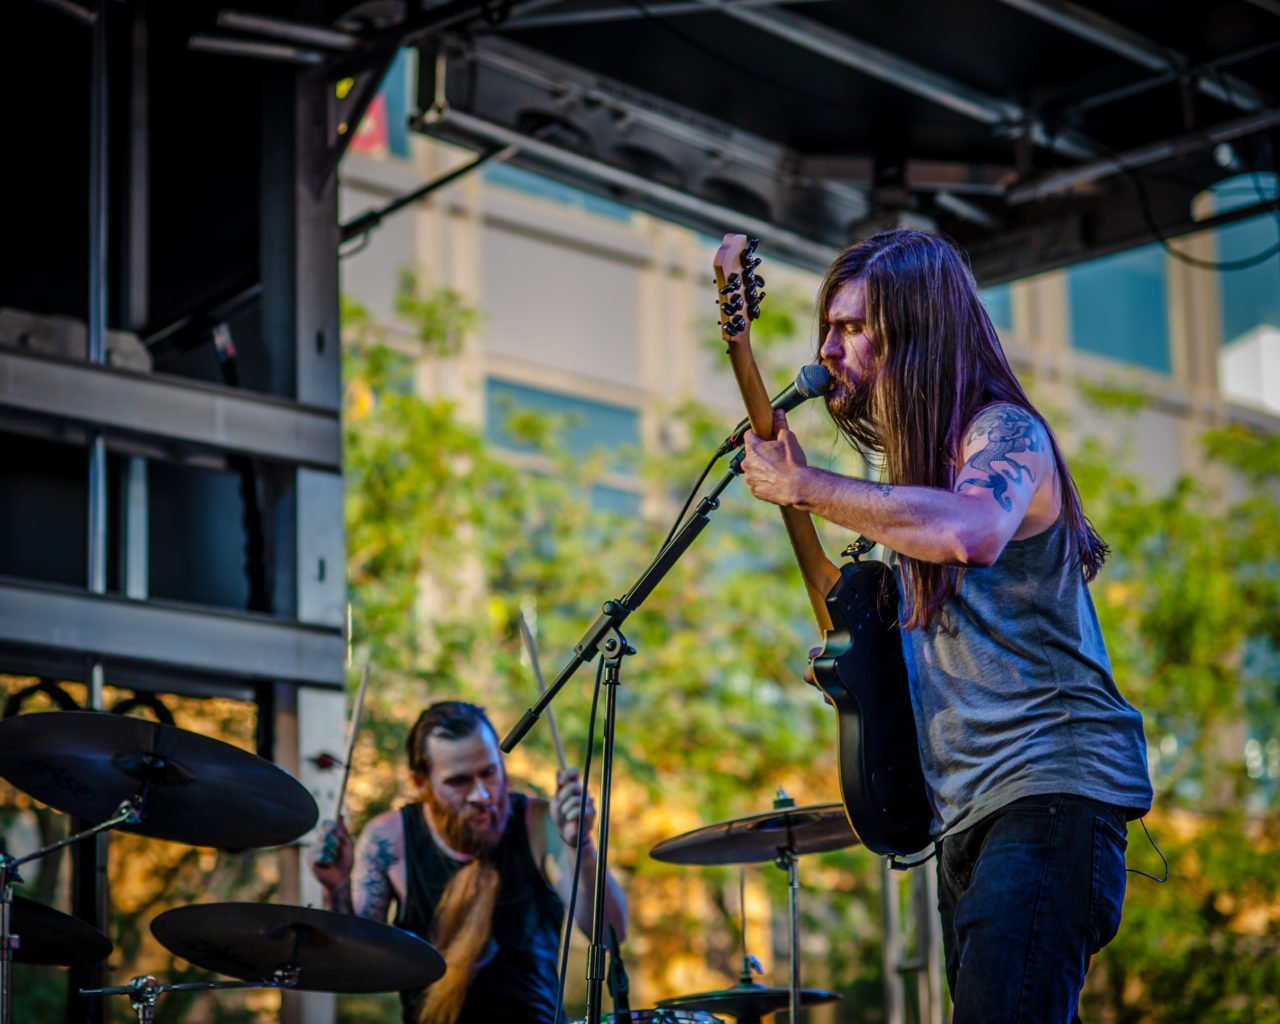 Telekinetic Yeti performing at 80/35 Music Festival 2018 in Des Moines, Iowa